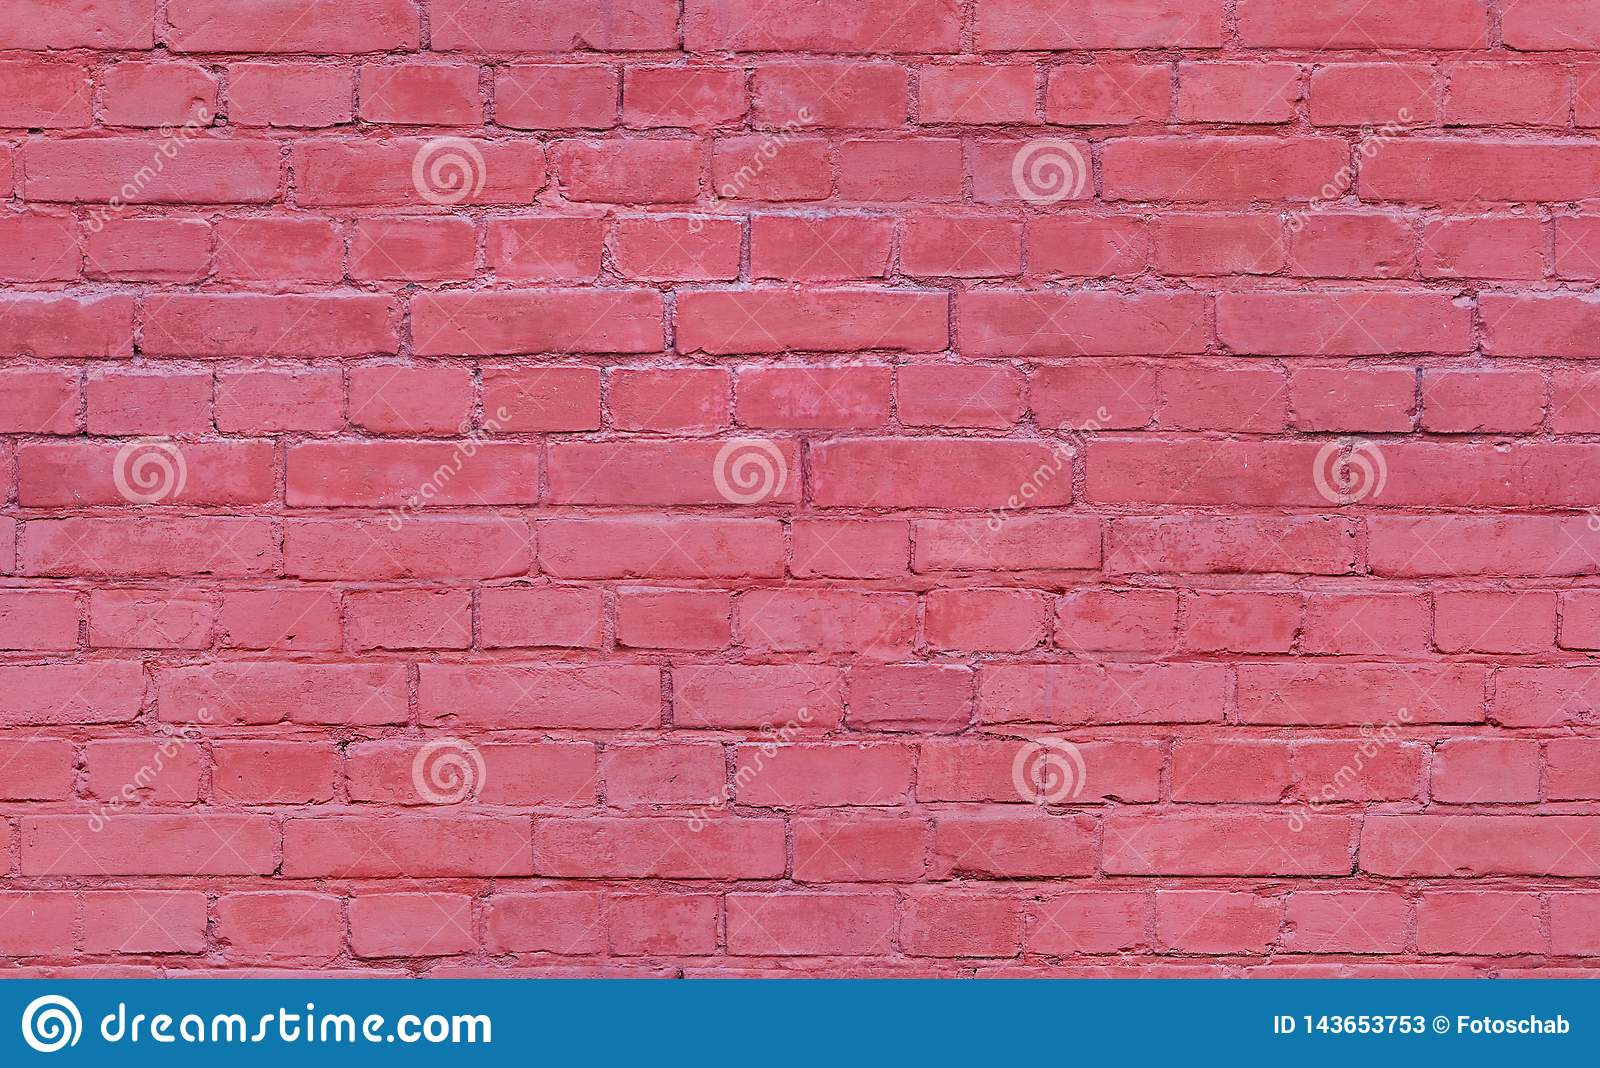 Seamless brick wall texture for background.